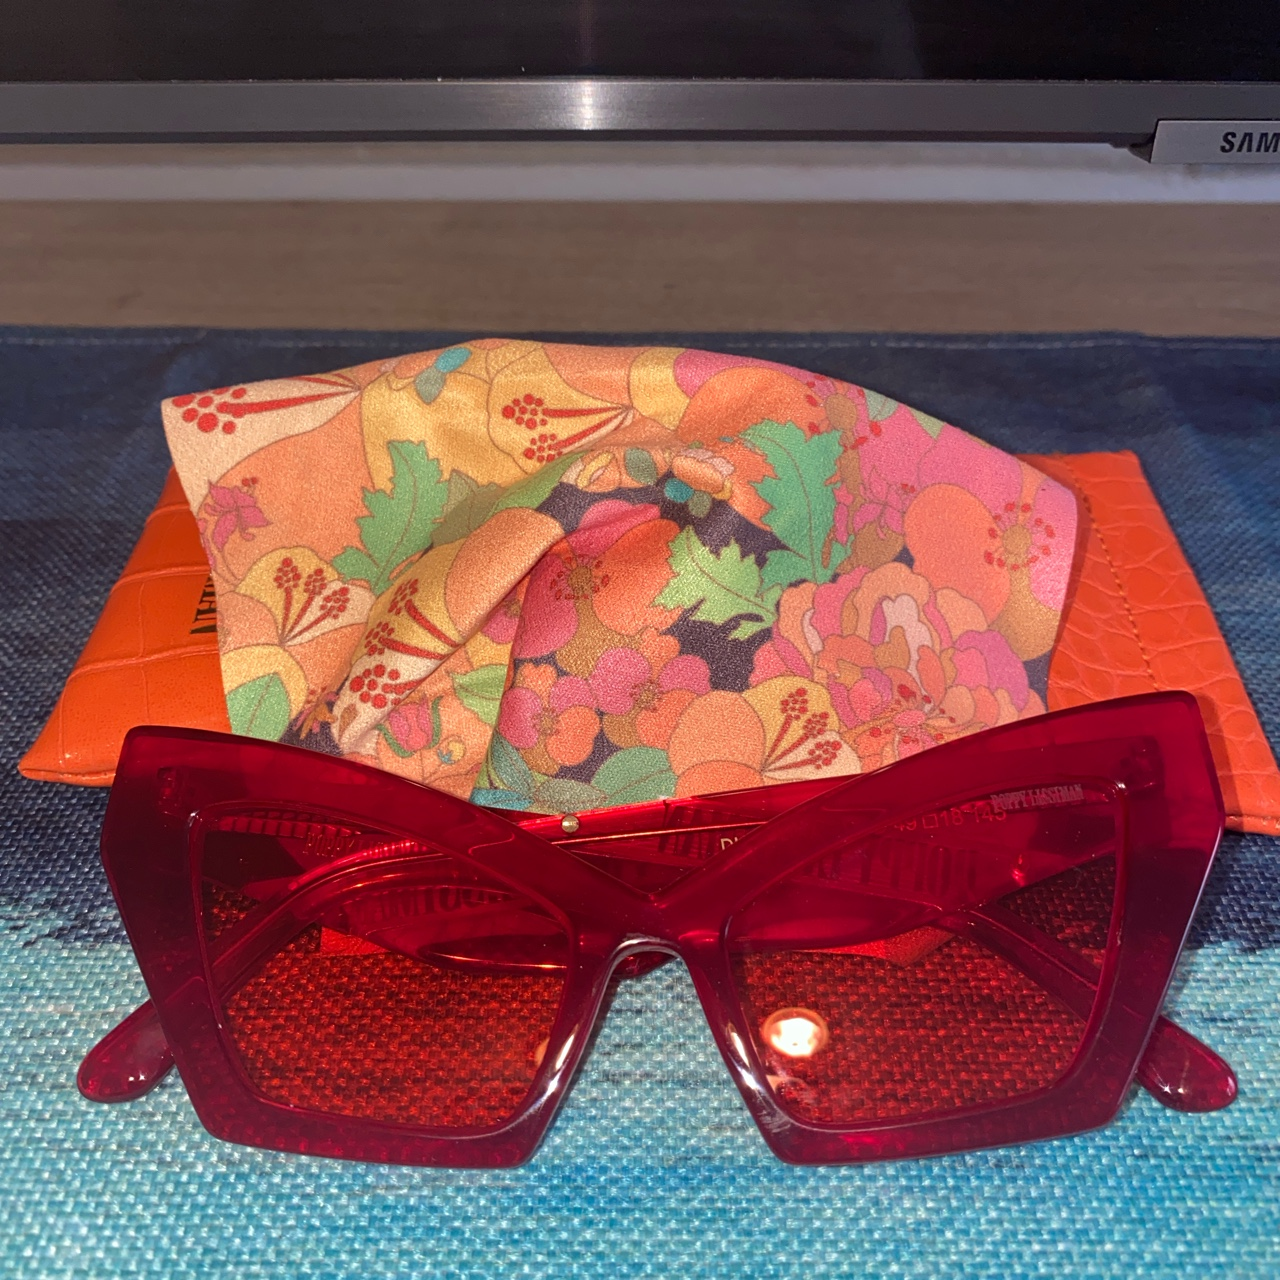 Product Image 1 - Poppy Lissiman Red sunglasses, worn